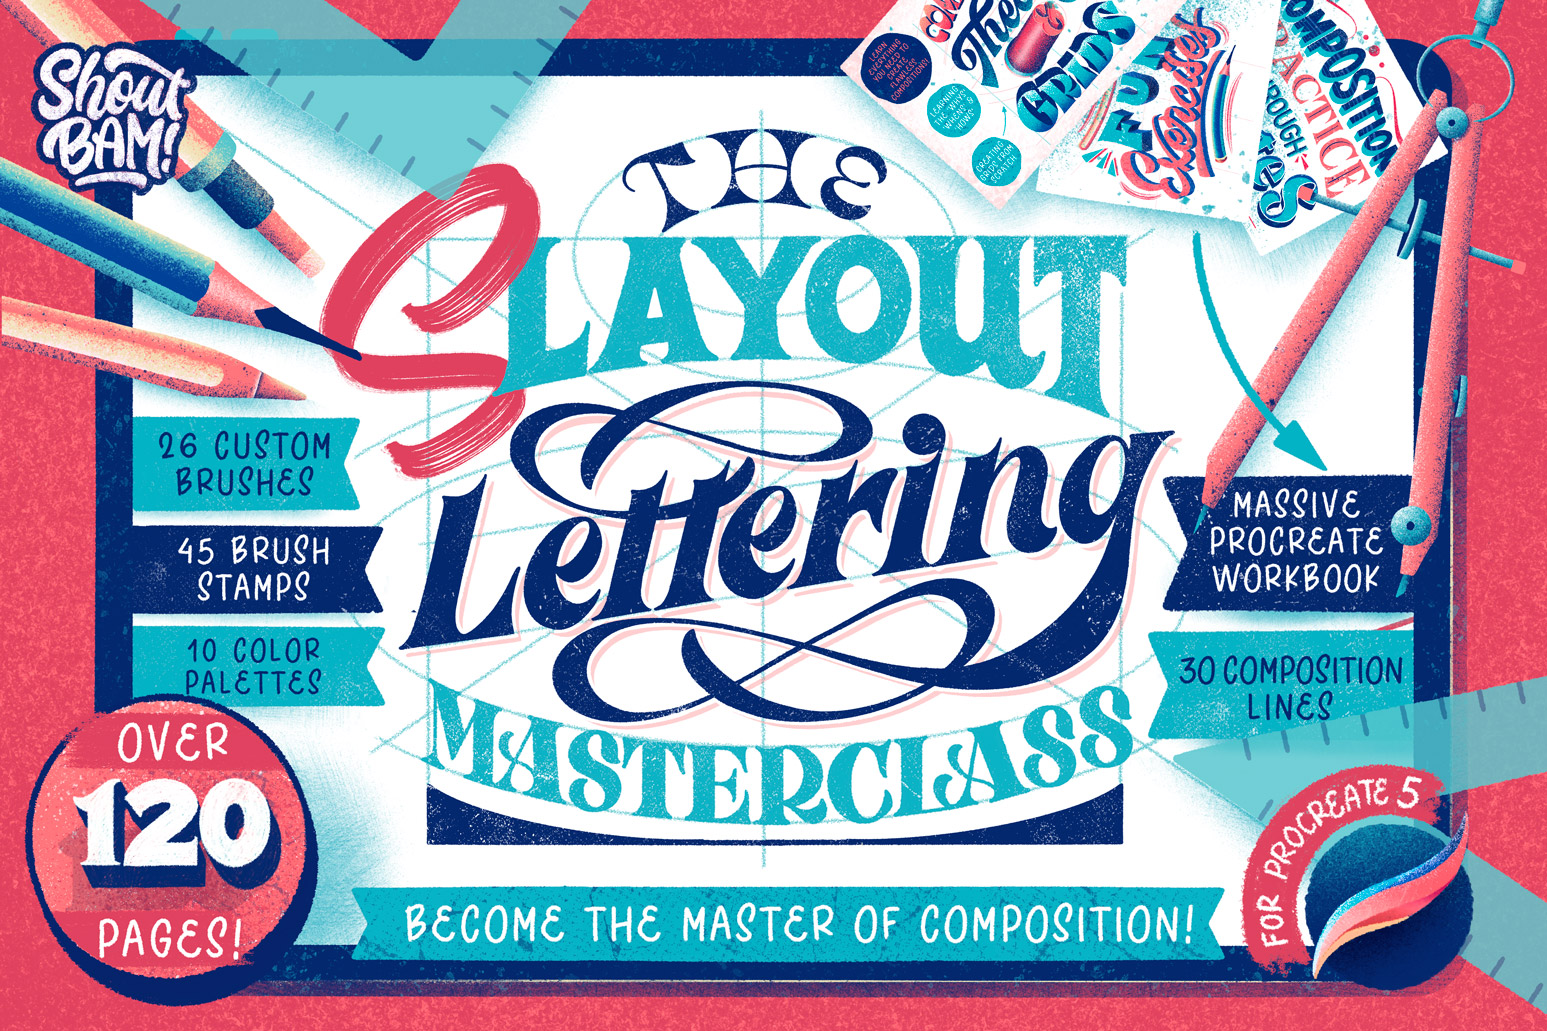 The Slayout Lettering Masterclass